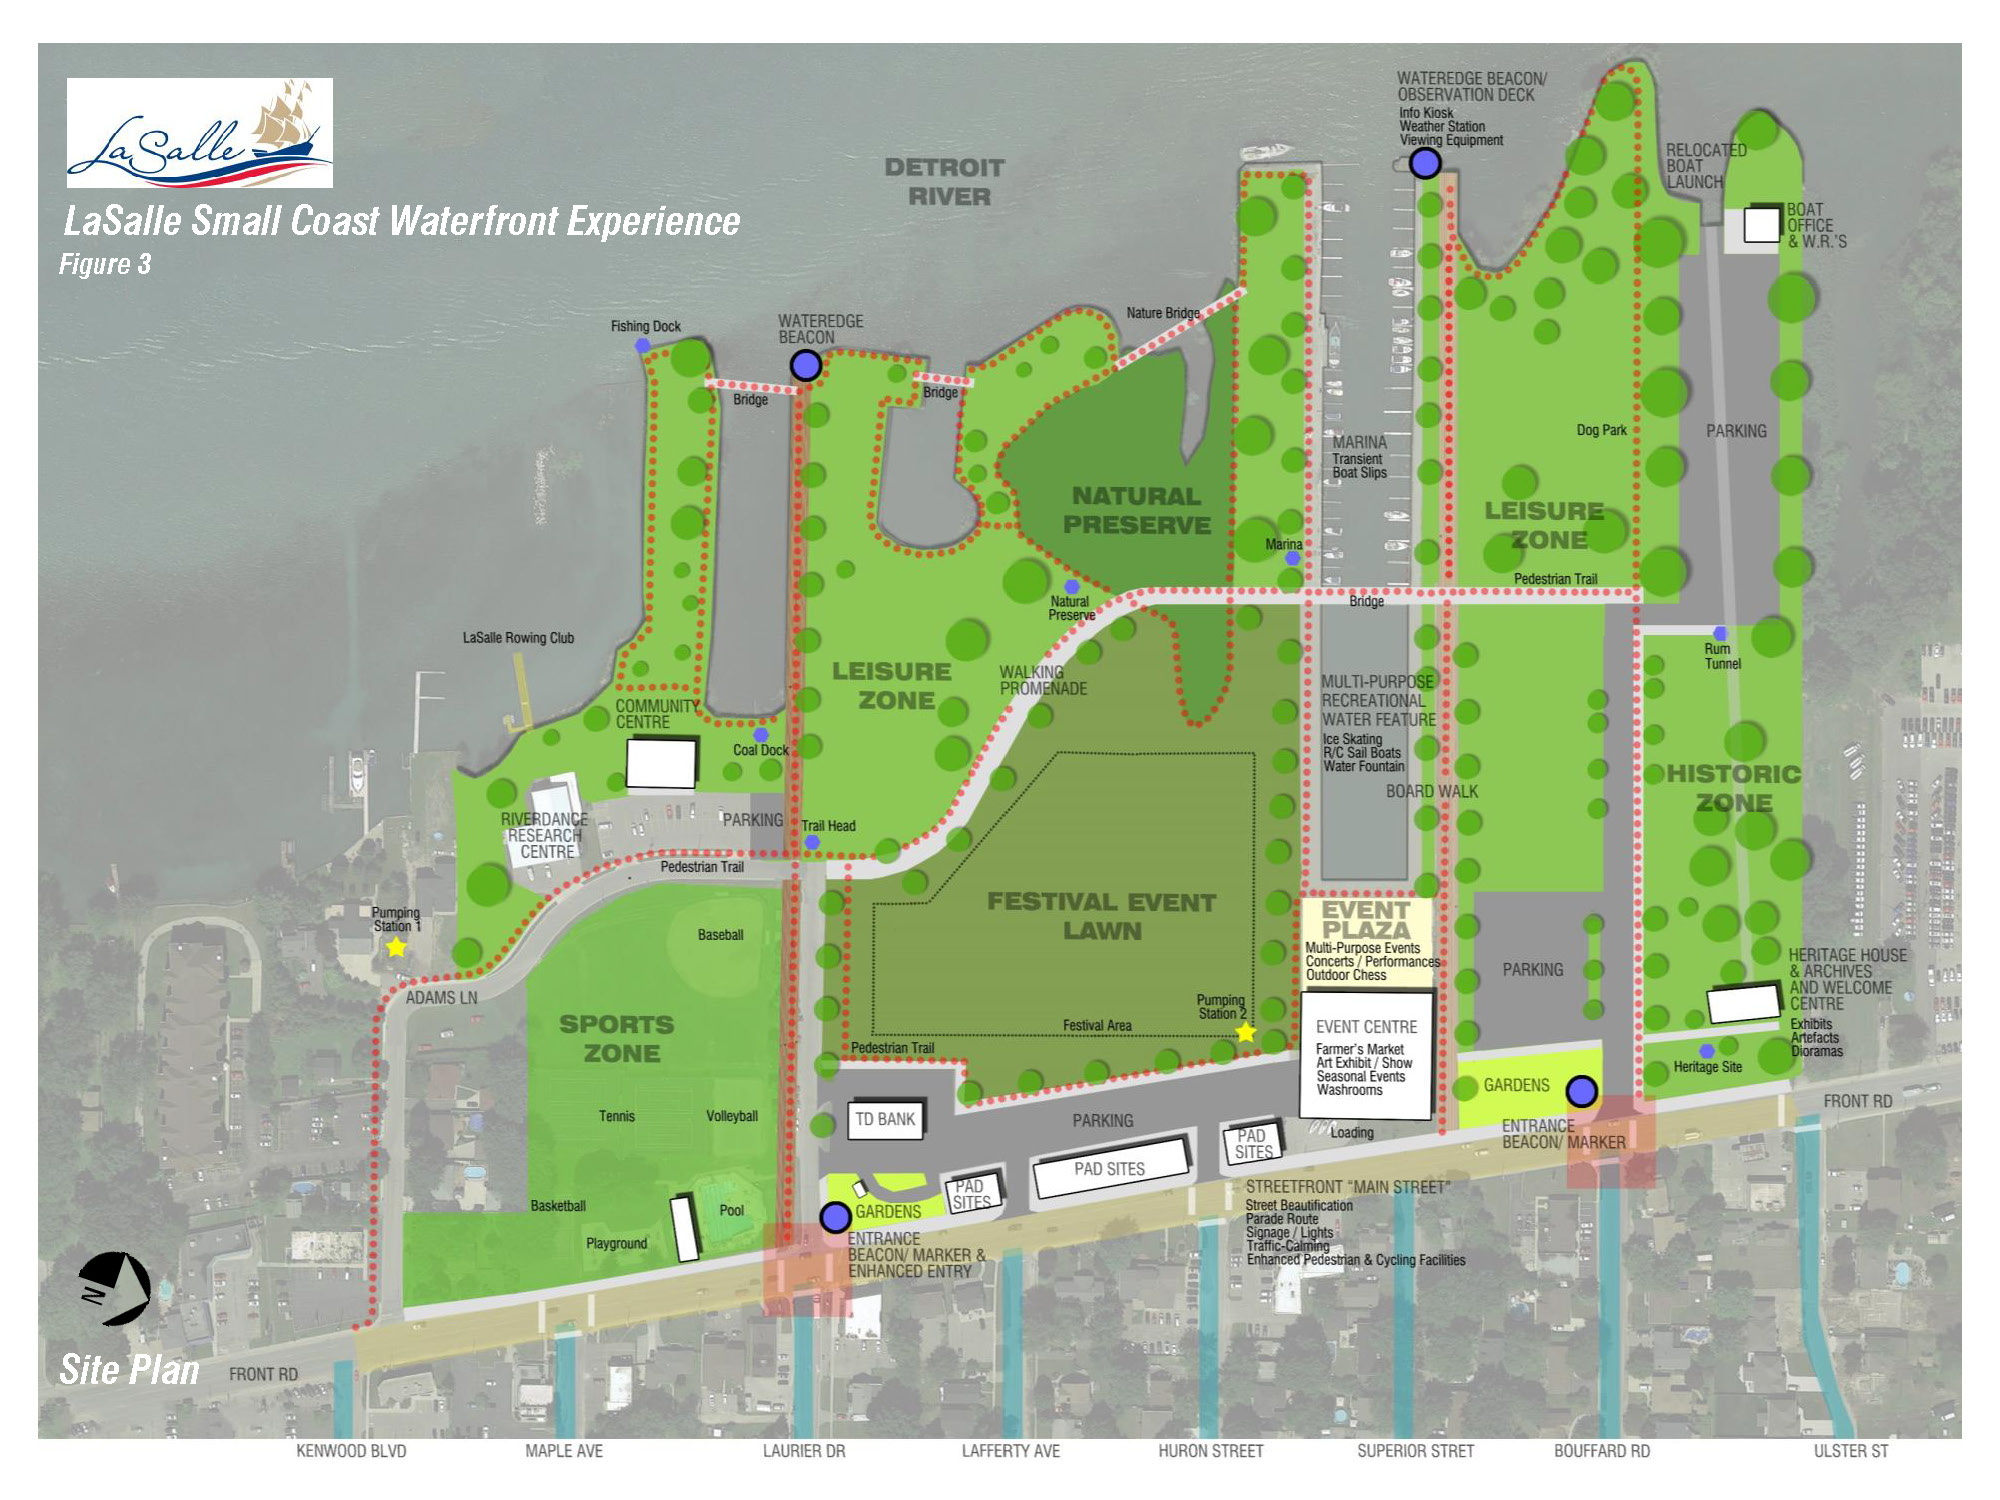 LaSalle Small Coast Waterfront Experience Site Plan